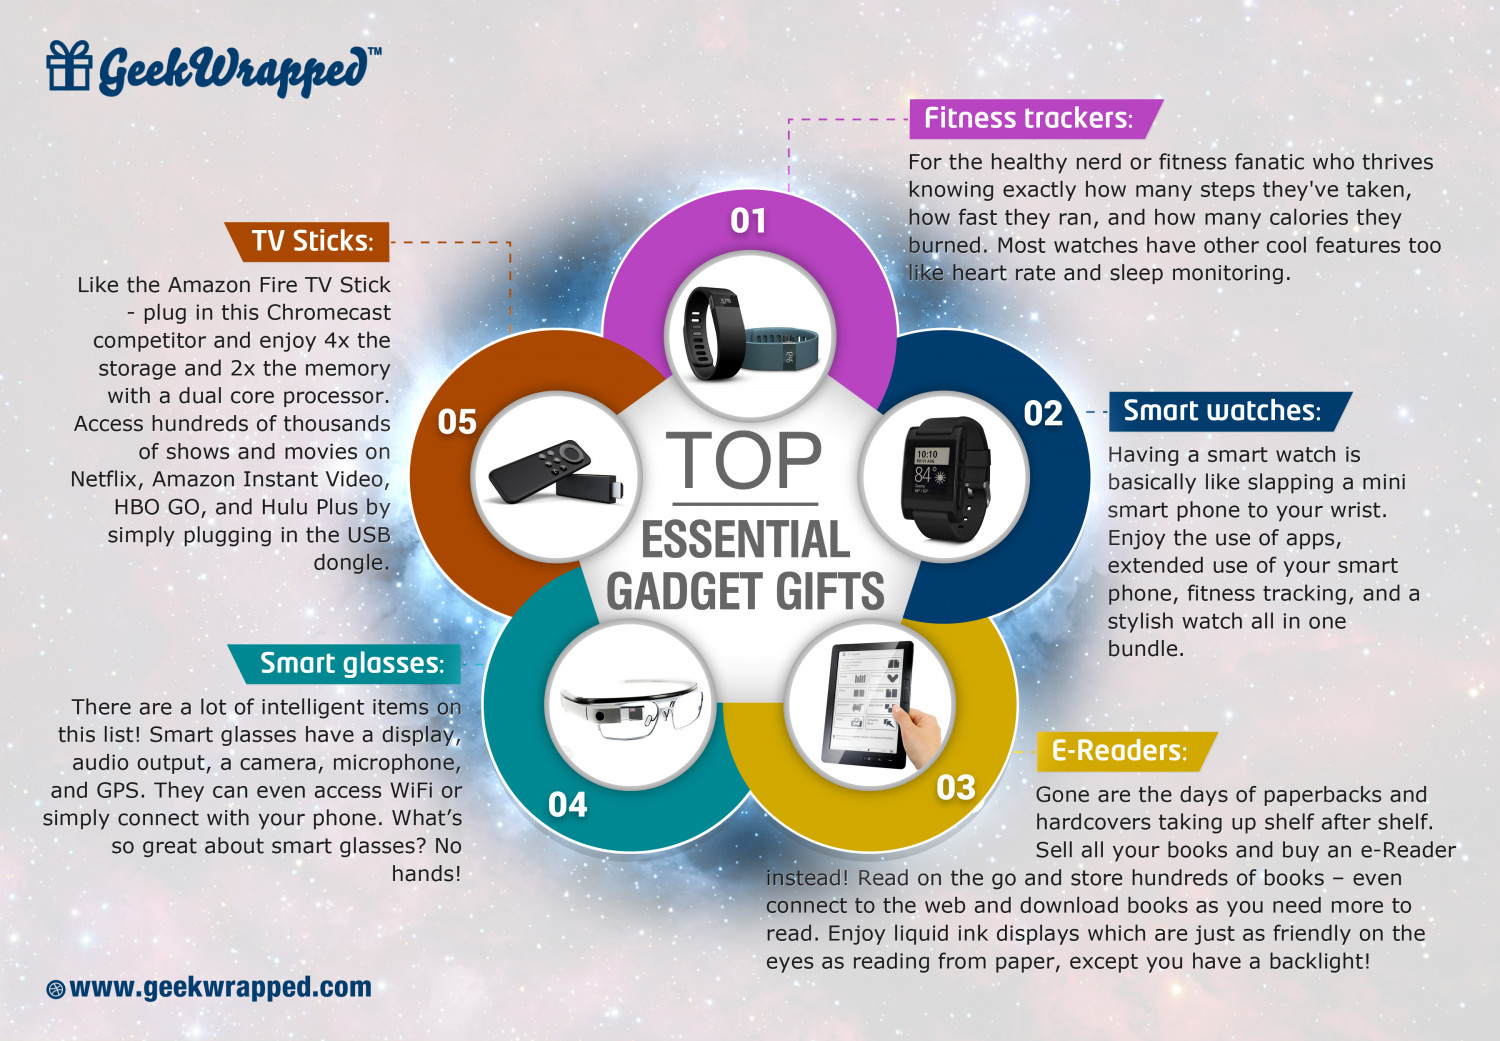 Top Essential Gadget Gifts Infographic